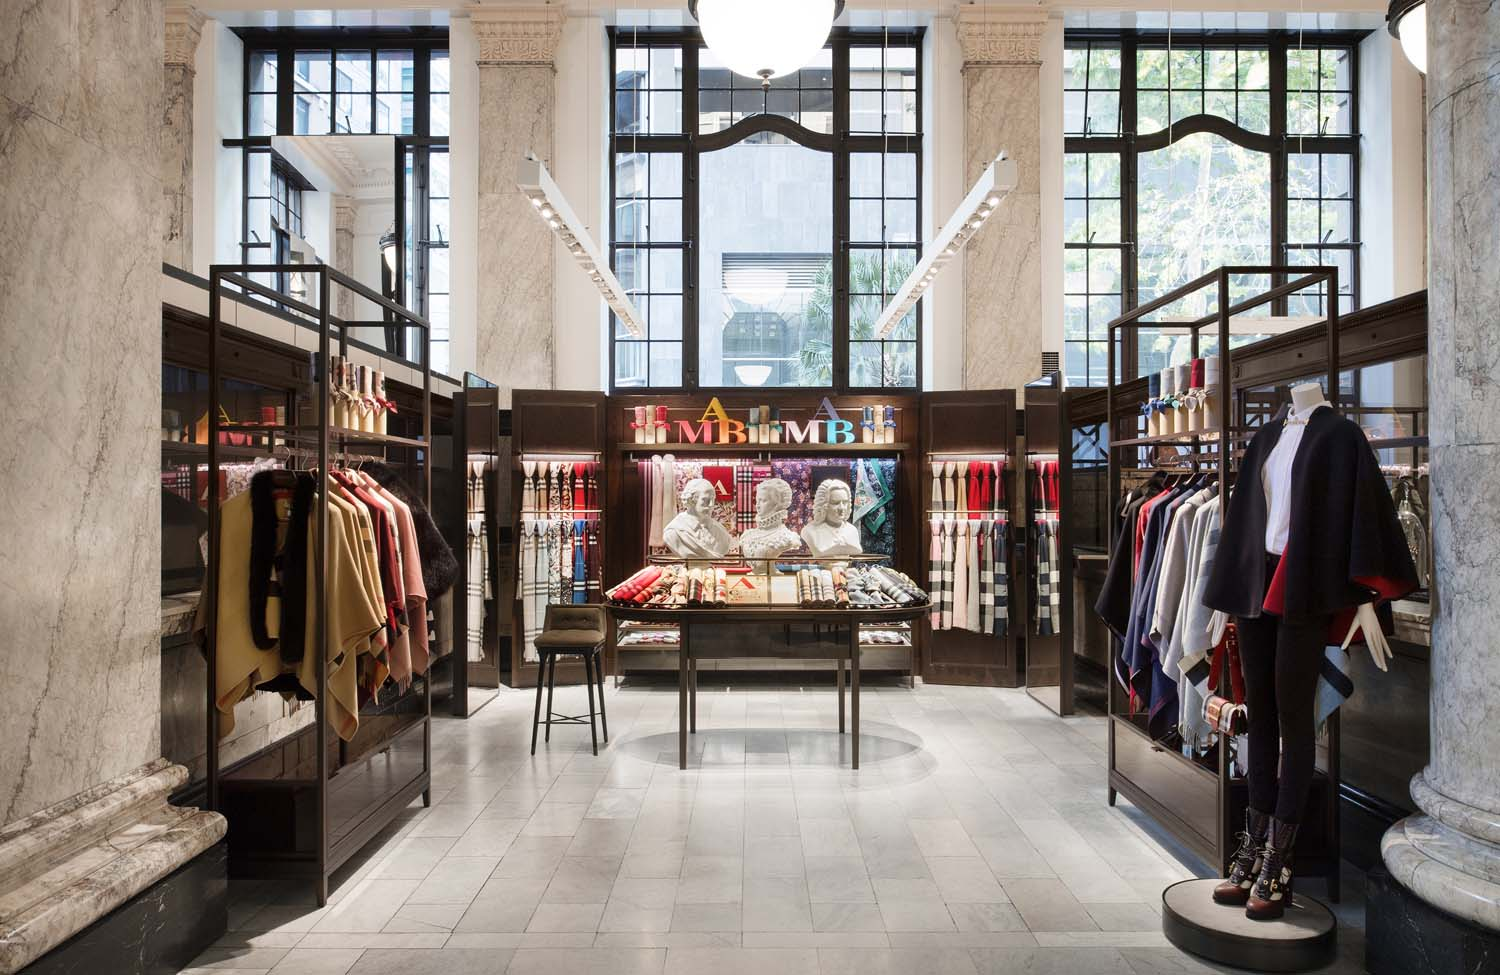 55ce3f895b The store will offer the largest Burberry product range found in Australia  and immersive audio-visual experiences for all customers.